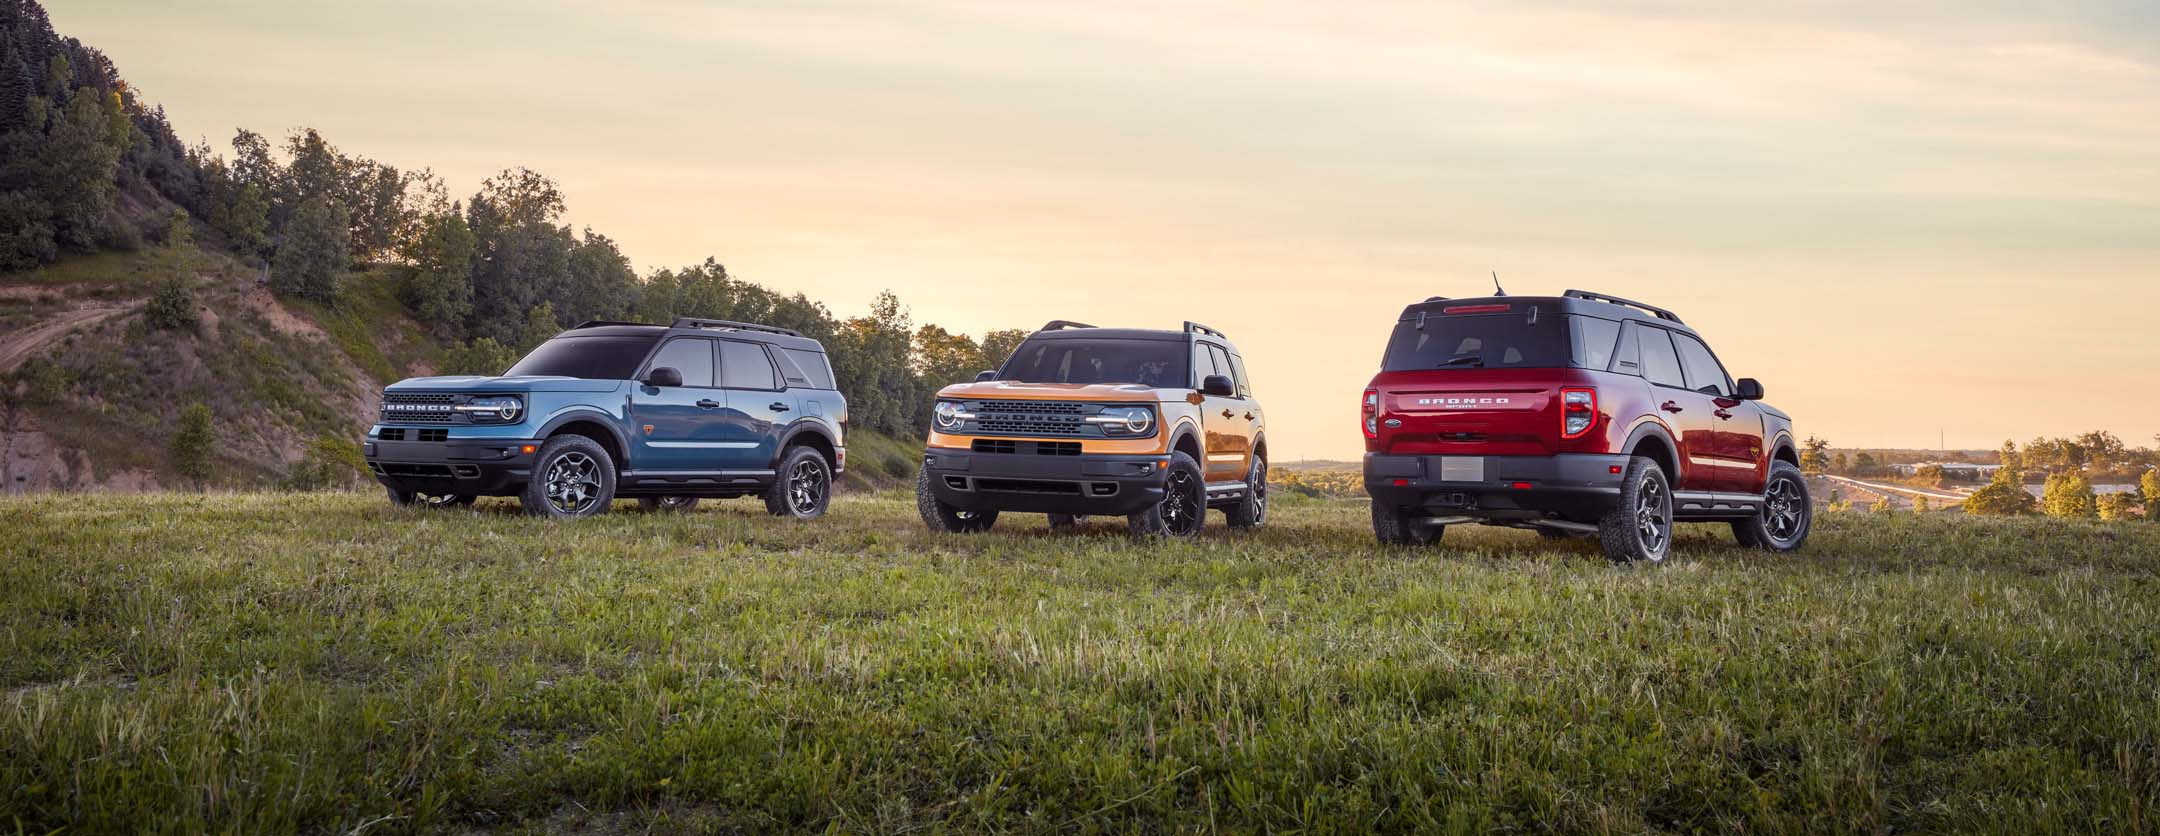 2021 Ford Bronco Sport Goes After The Jeep Cherokee Autotrader Ca